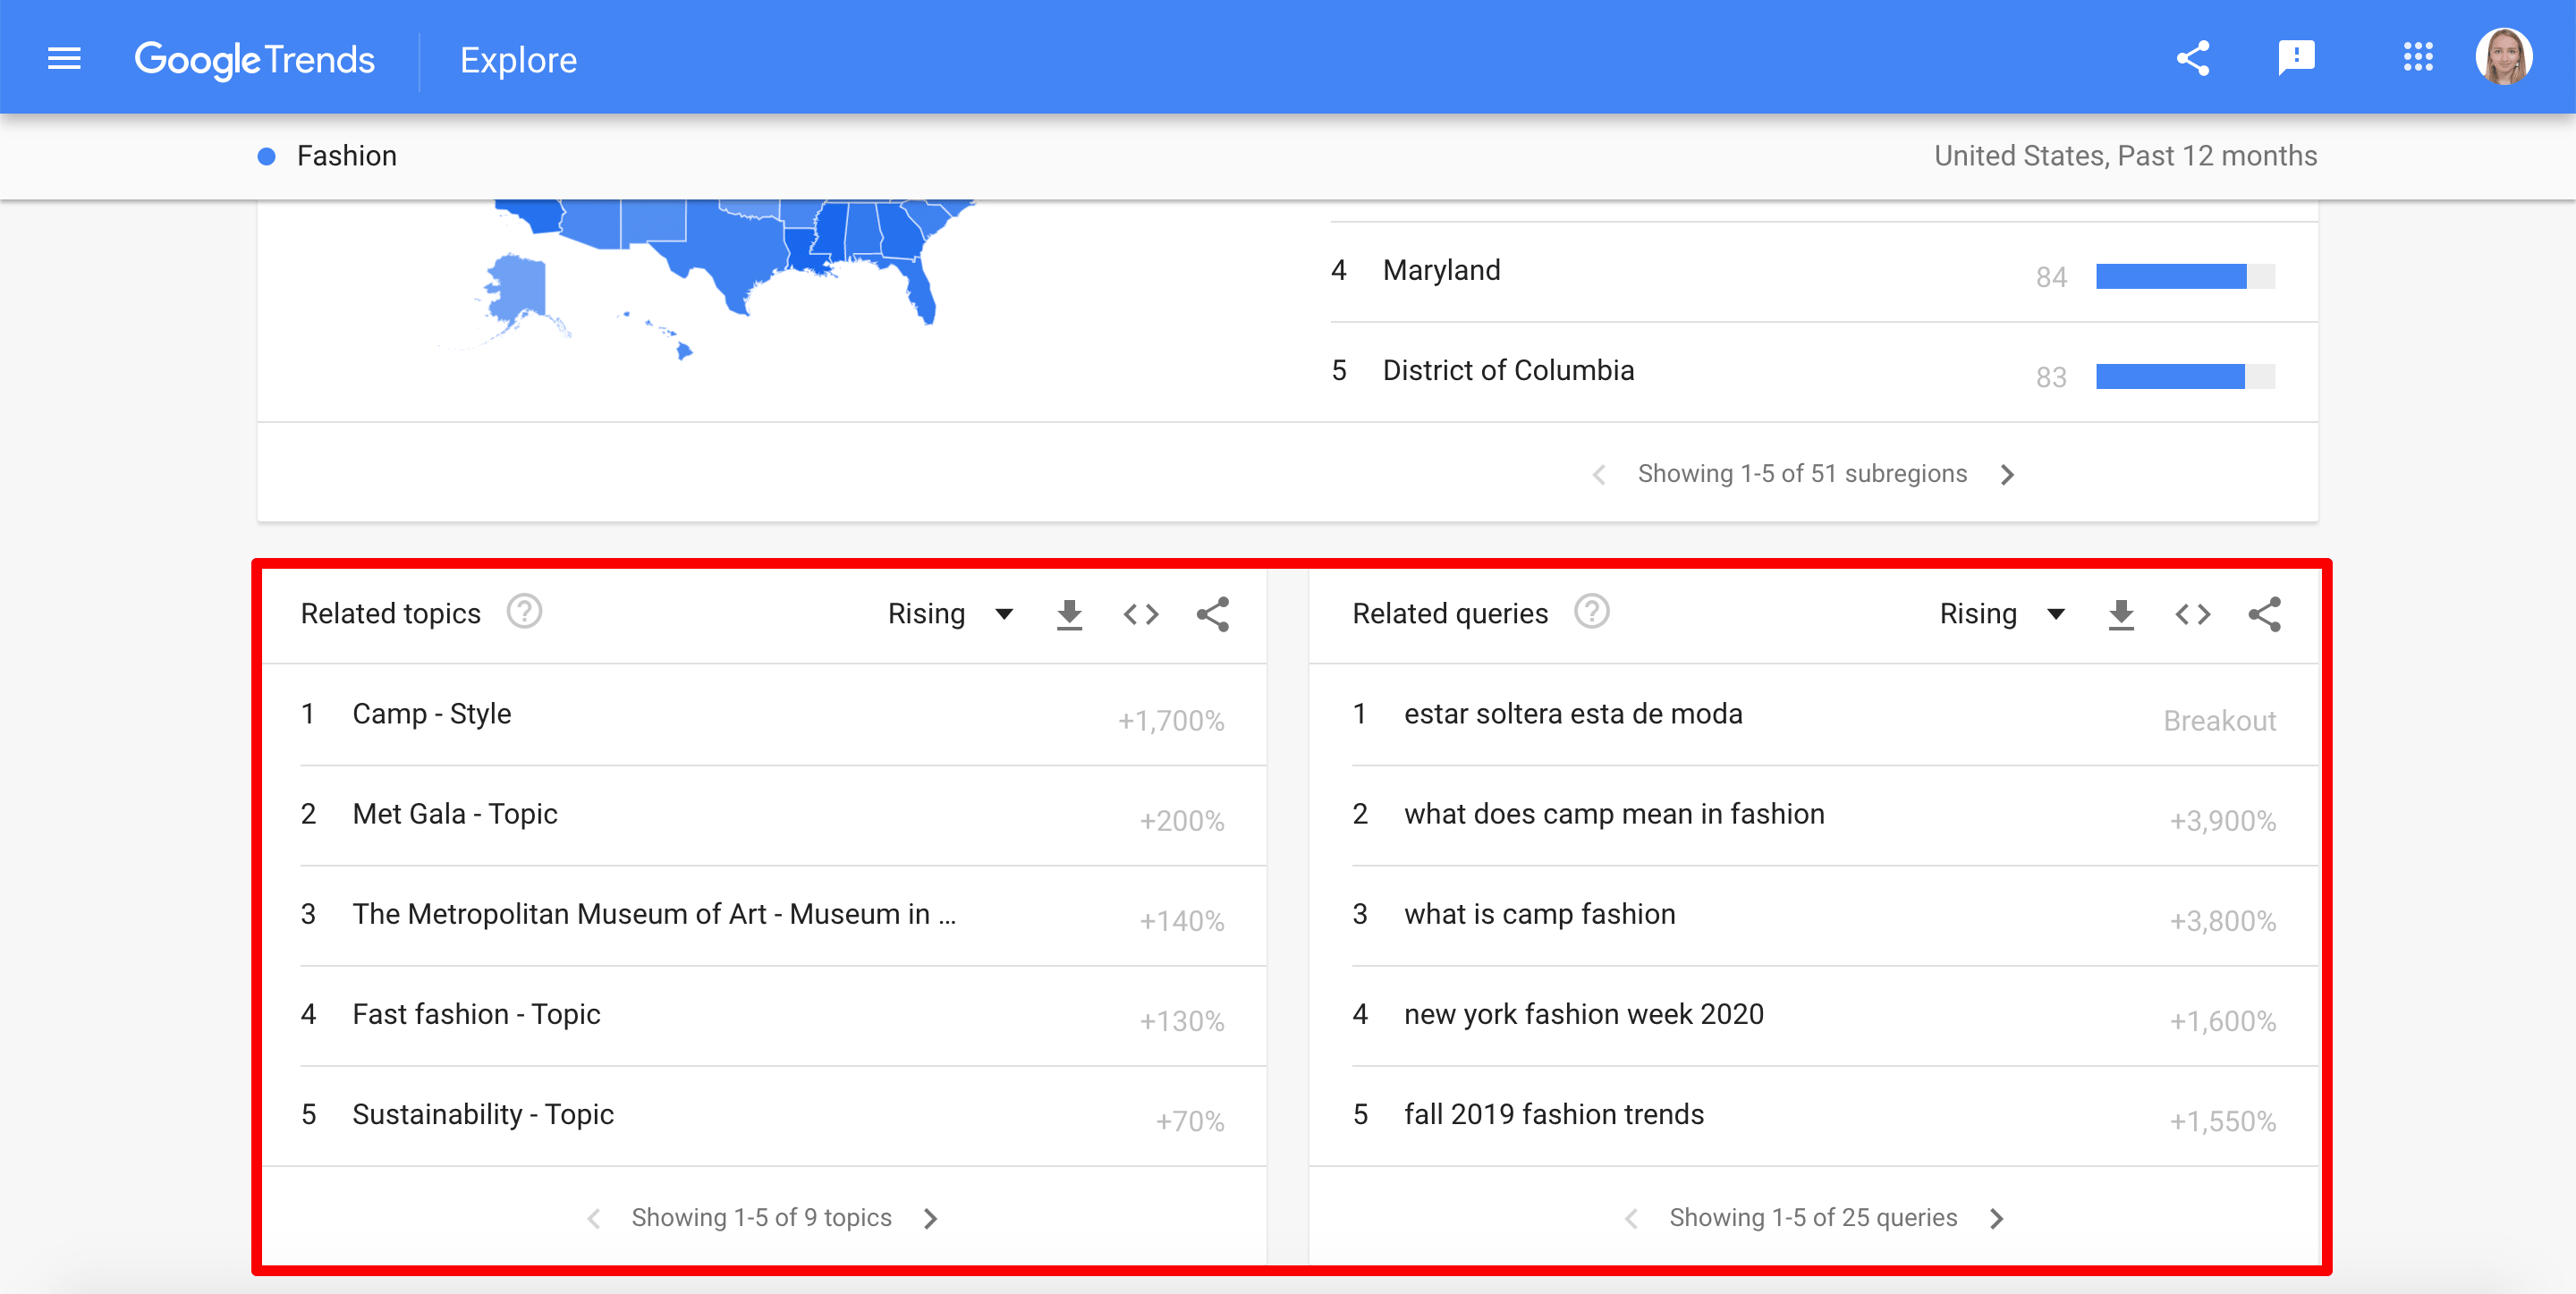 Related topics and Related queries tabs in Google Trends